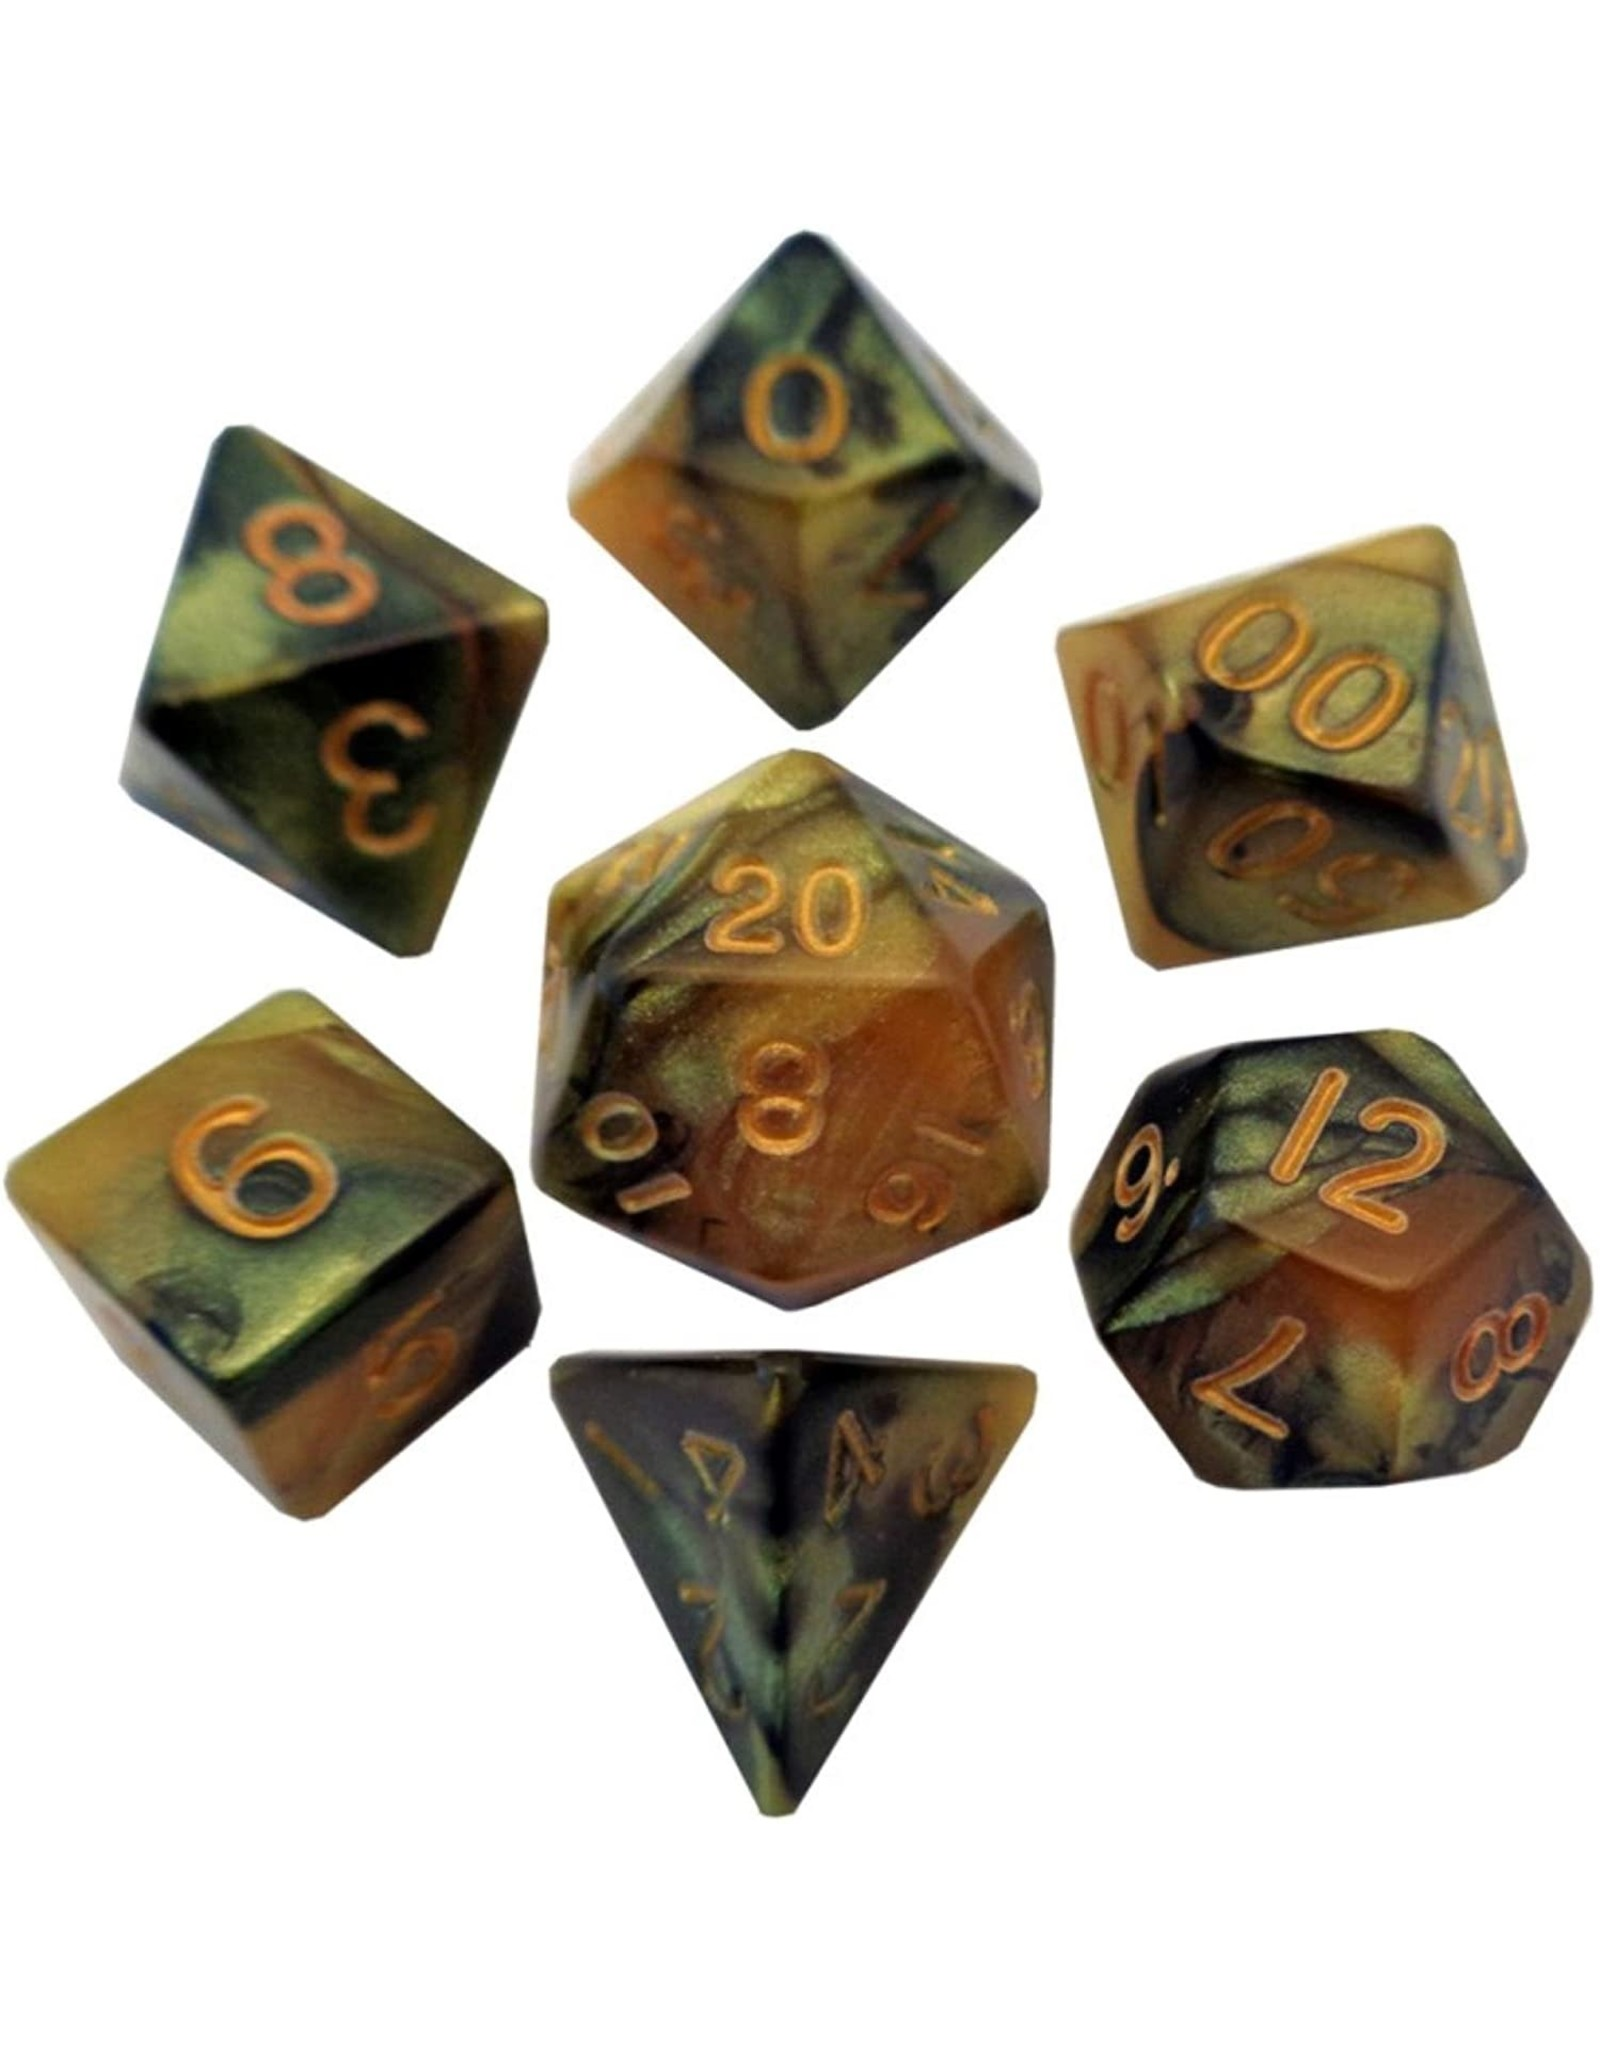 Metallic Dice Games 16mm Polyhedral Dice Set Combo Attack Black/Yellow w/ Gold Numbers